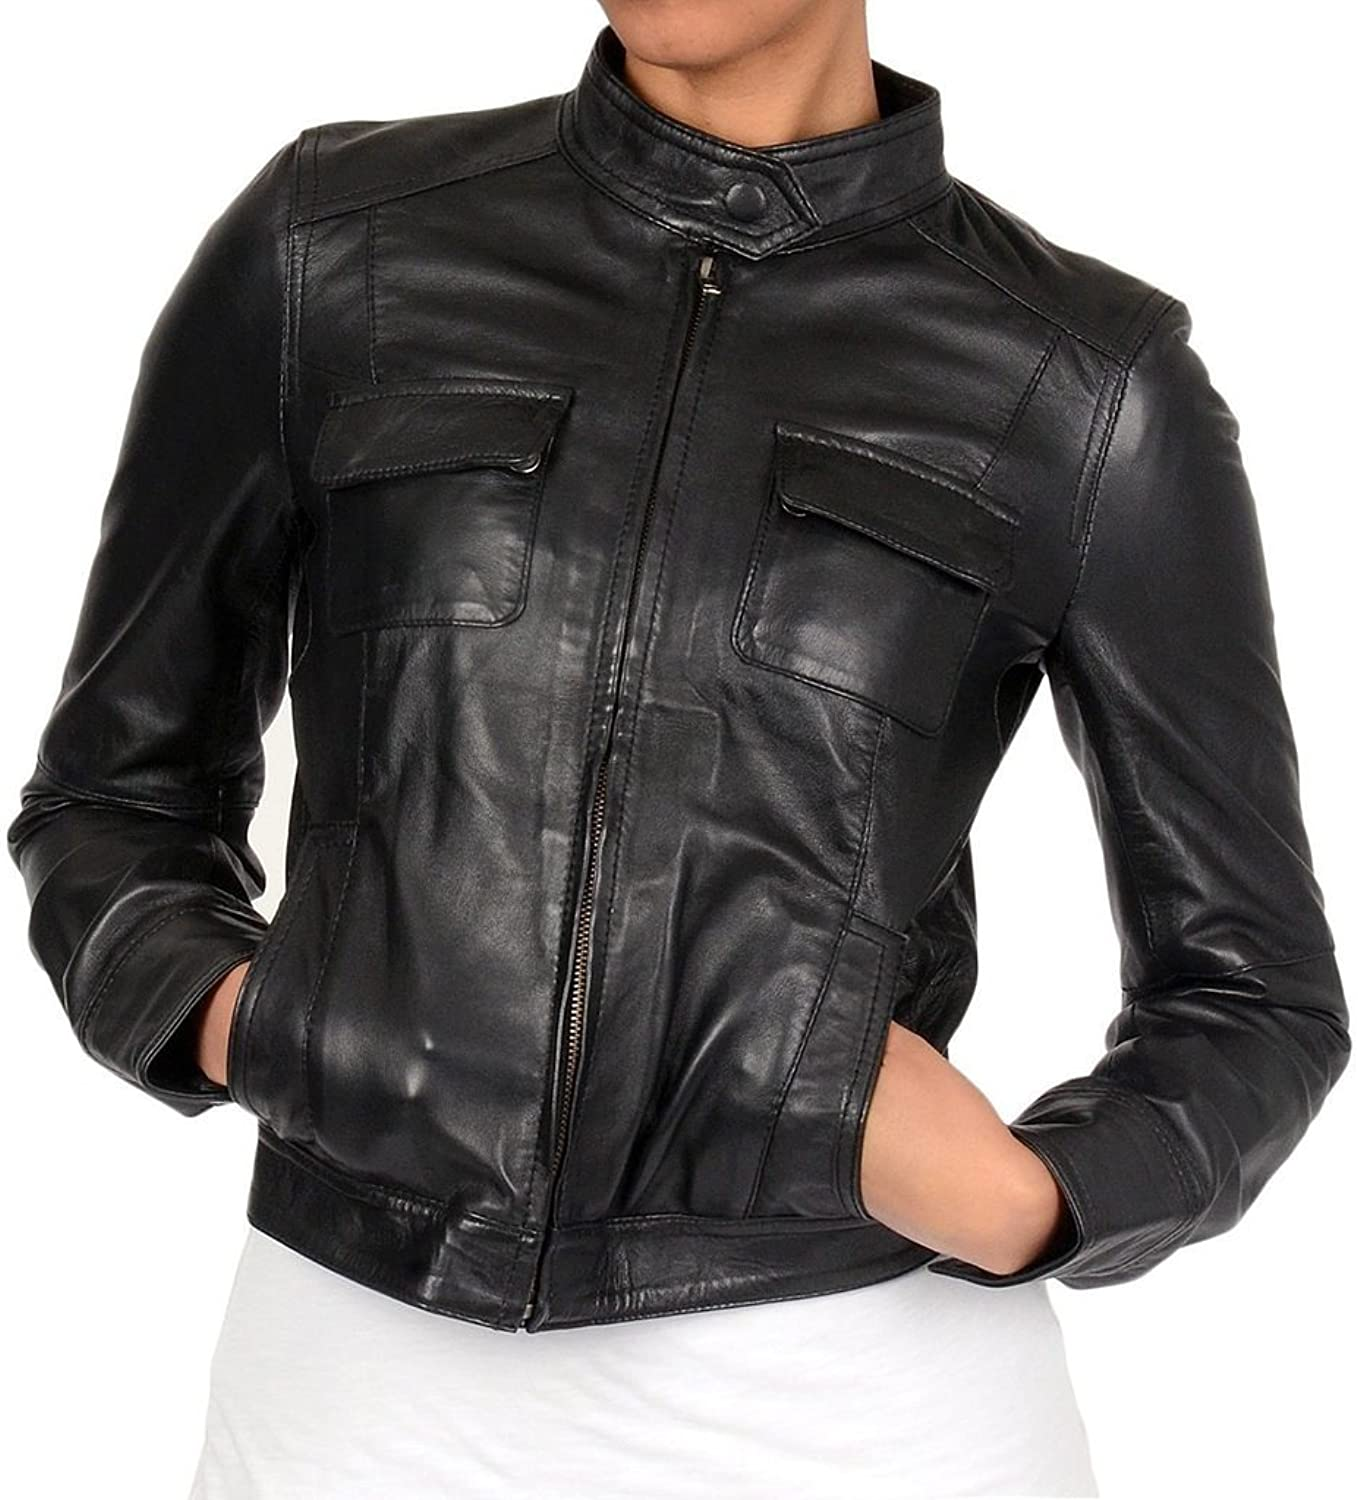 New Womens Leather Motorcycle Slim Fit Sheep Leather Jacket Coat LTW332